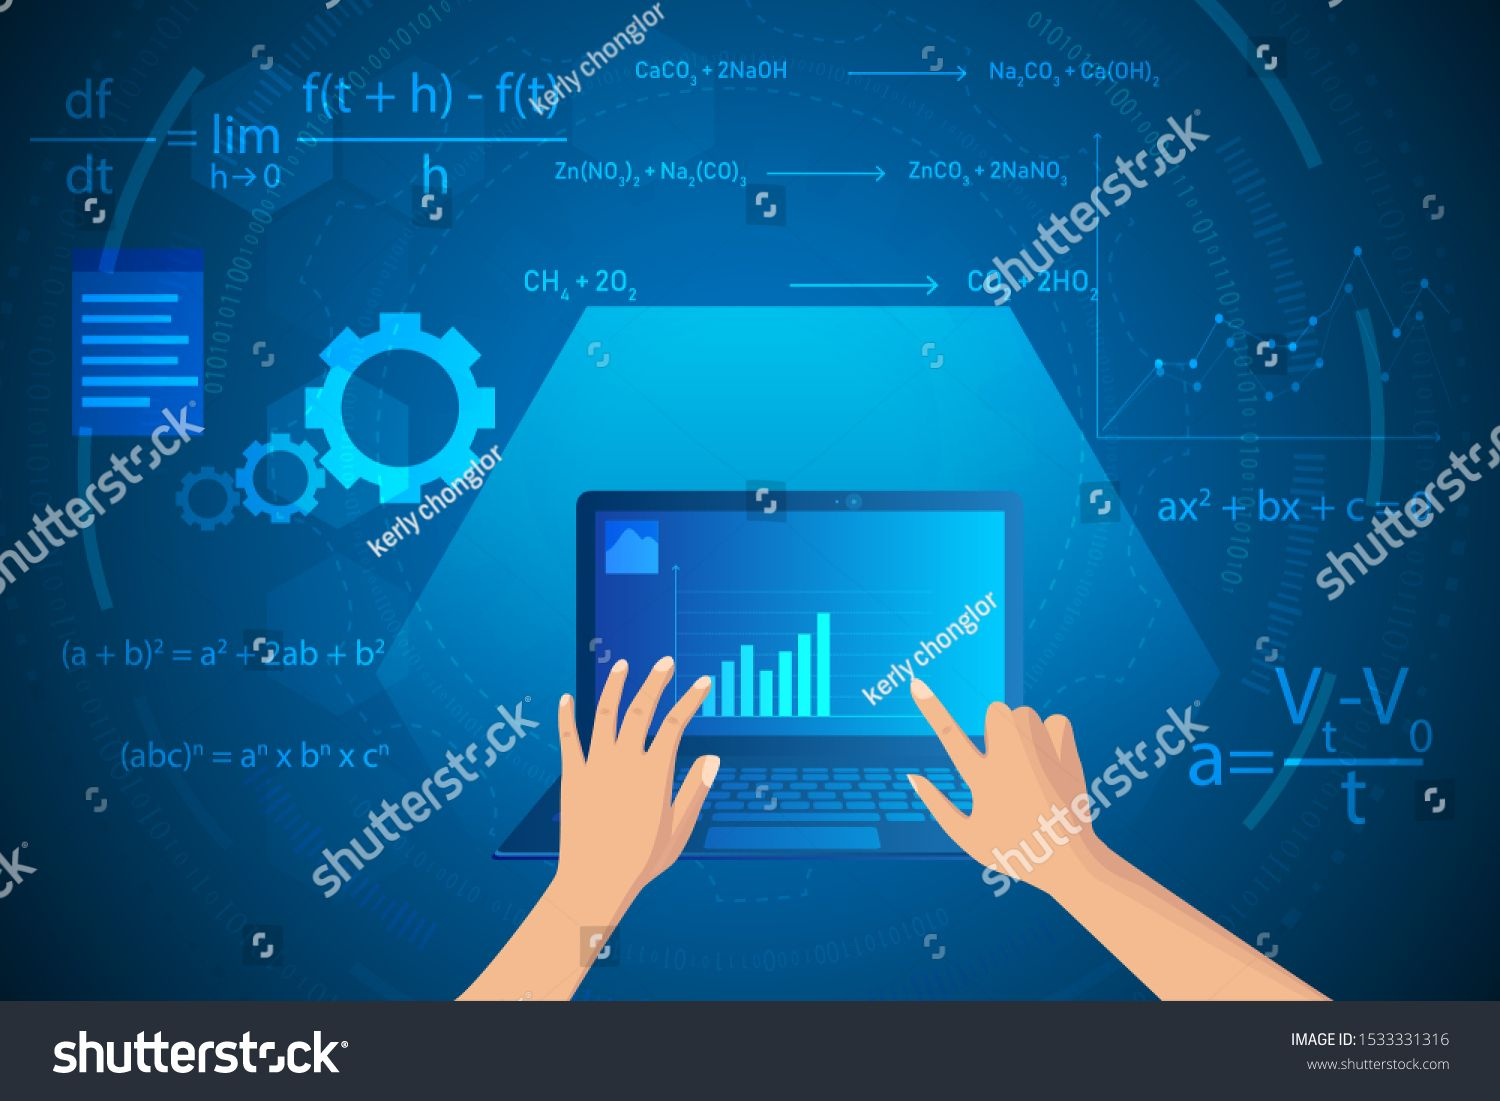 Mathematics And Physics On Technology Abstract Background Learning And Study Online On Computer Ad Spon Techn Abstract Backgrounds Mathematics Abstract